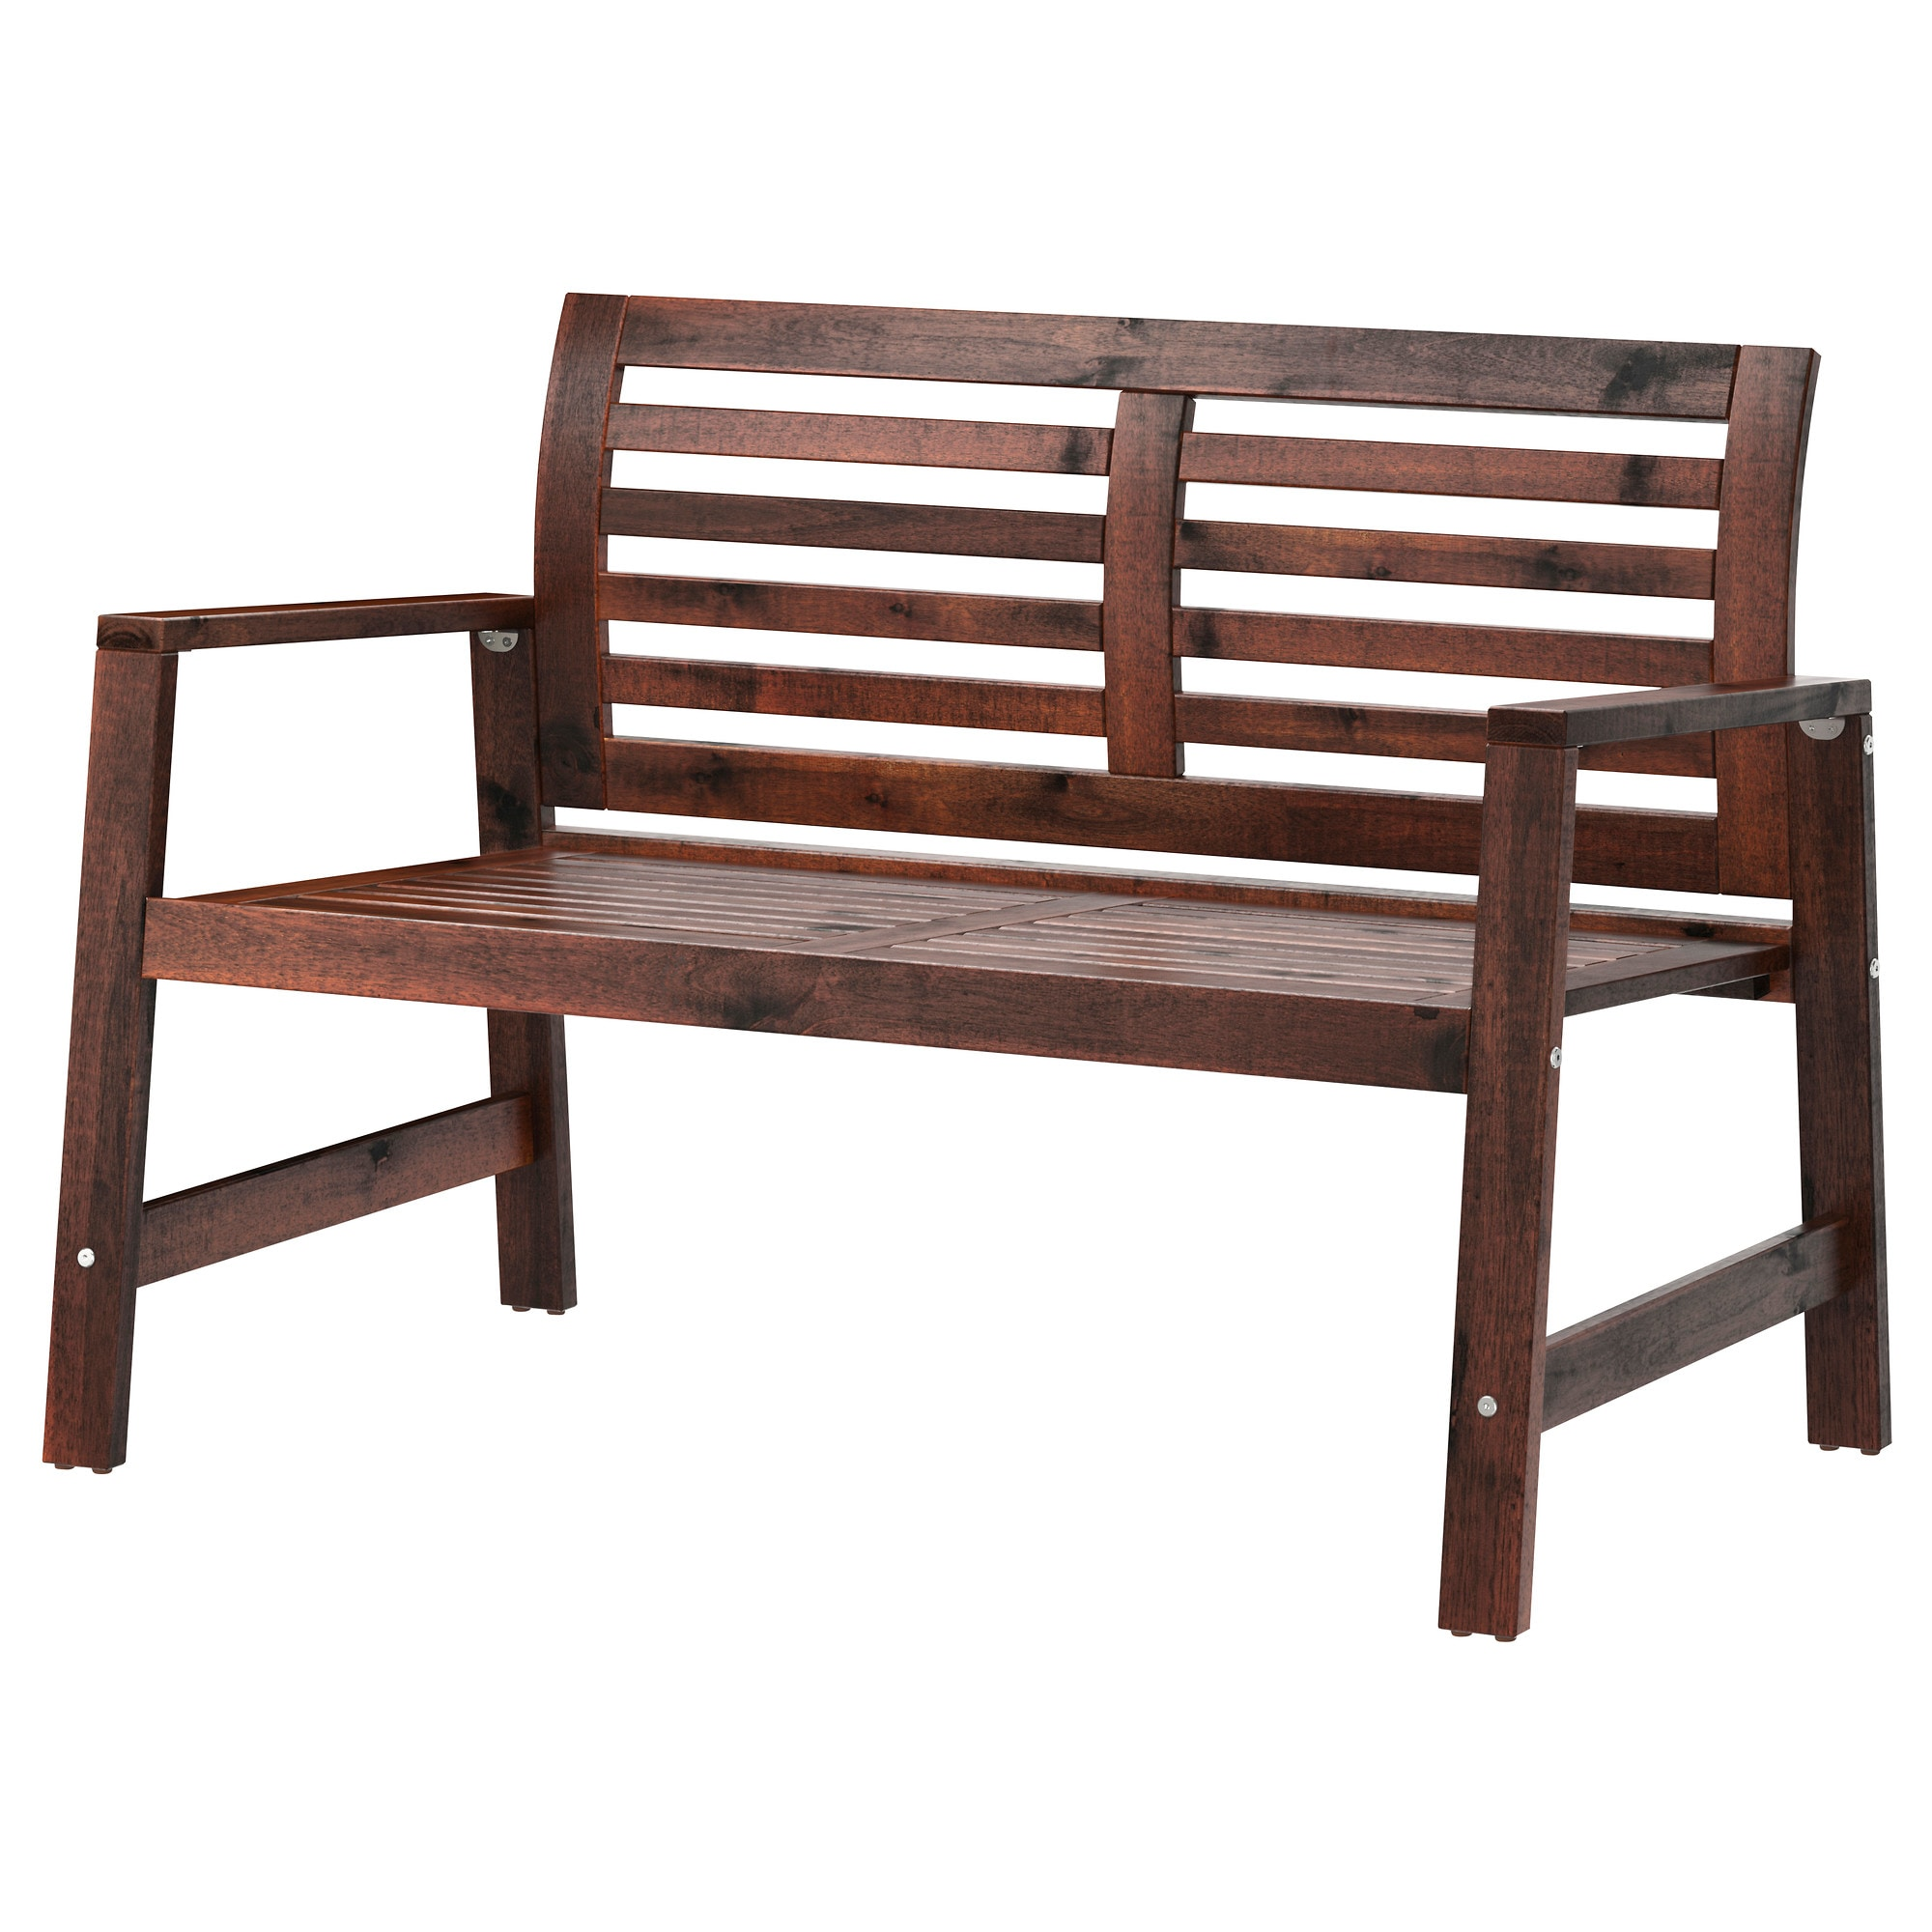 ÄPPLARÖ Bench With Backrest, Outdoor, Brown Brown Stained Width: 46 1/8